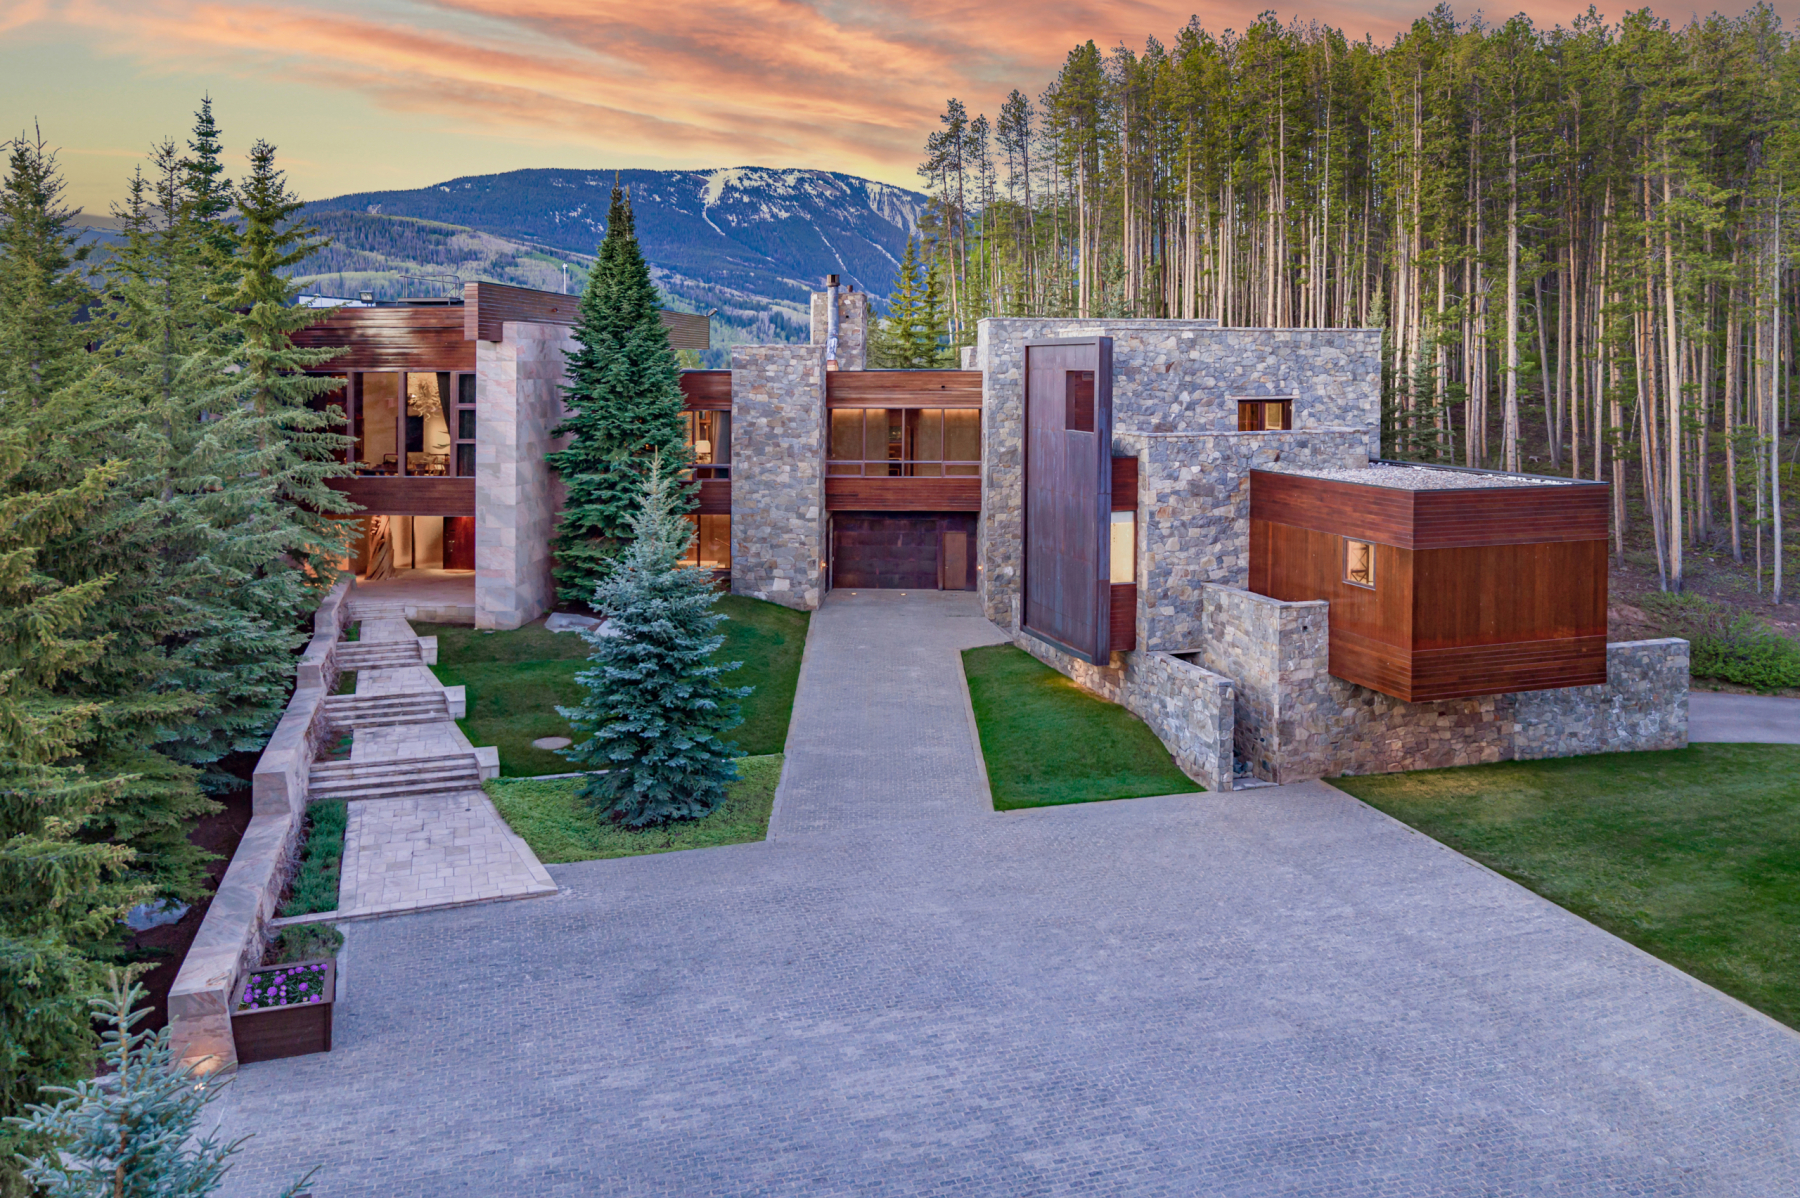 Vail-MLS-Final-Images-reordered-Malia-013-scaled